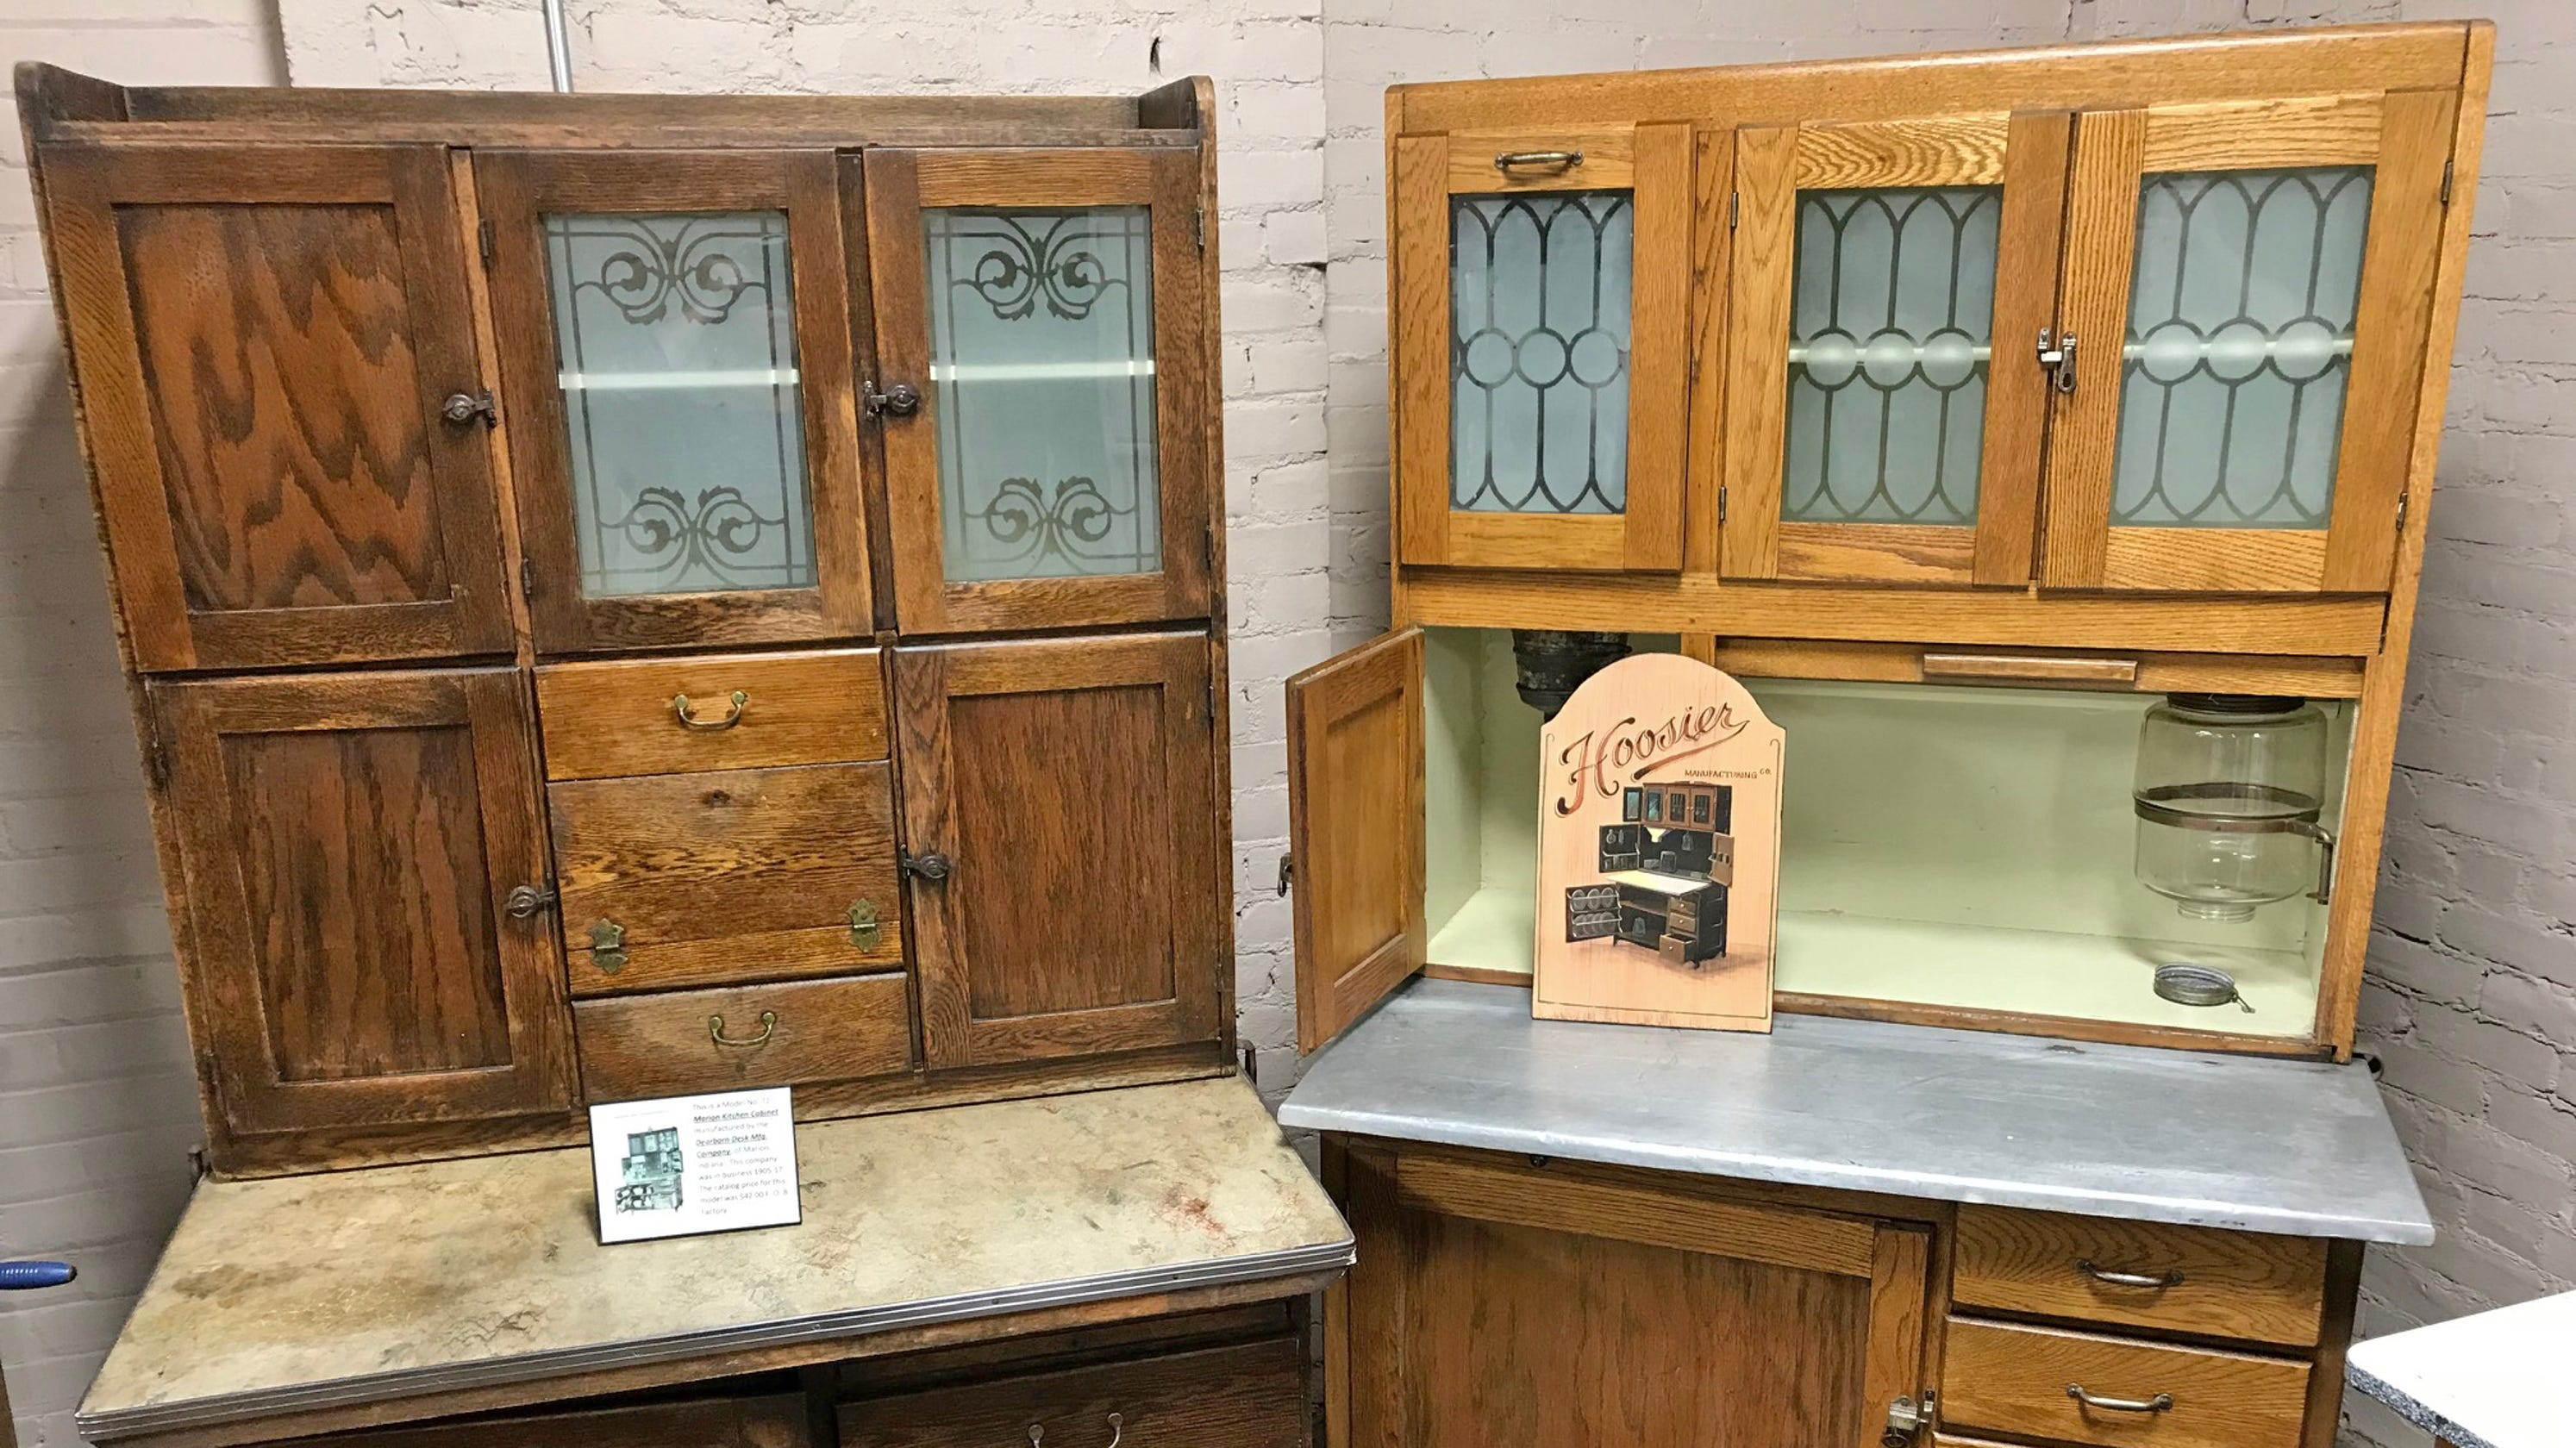 How The Hoosier Kitchen Cabinet Saved Miles Of Steps